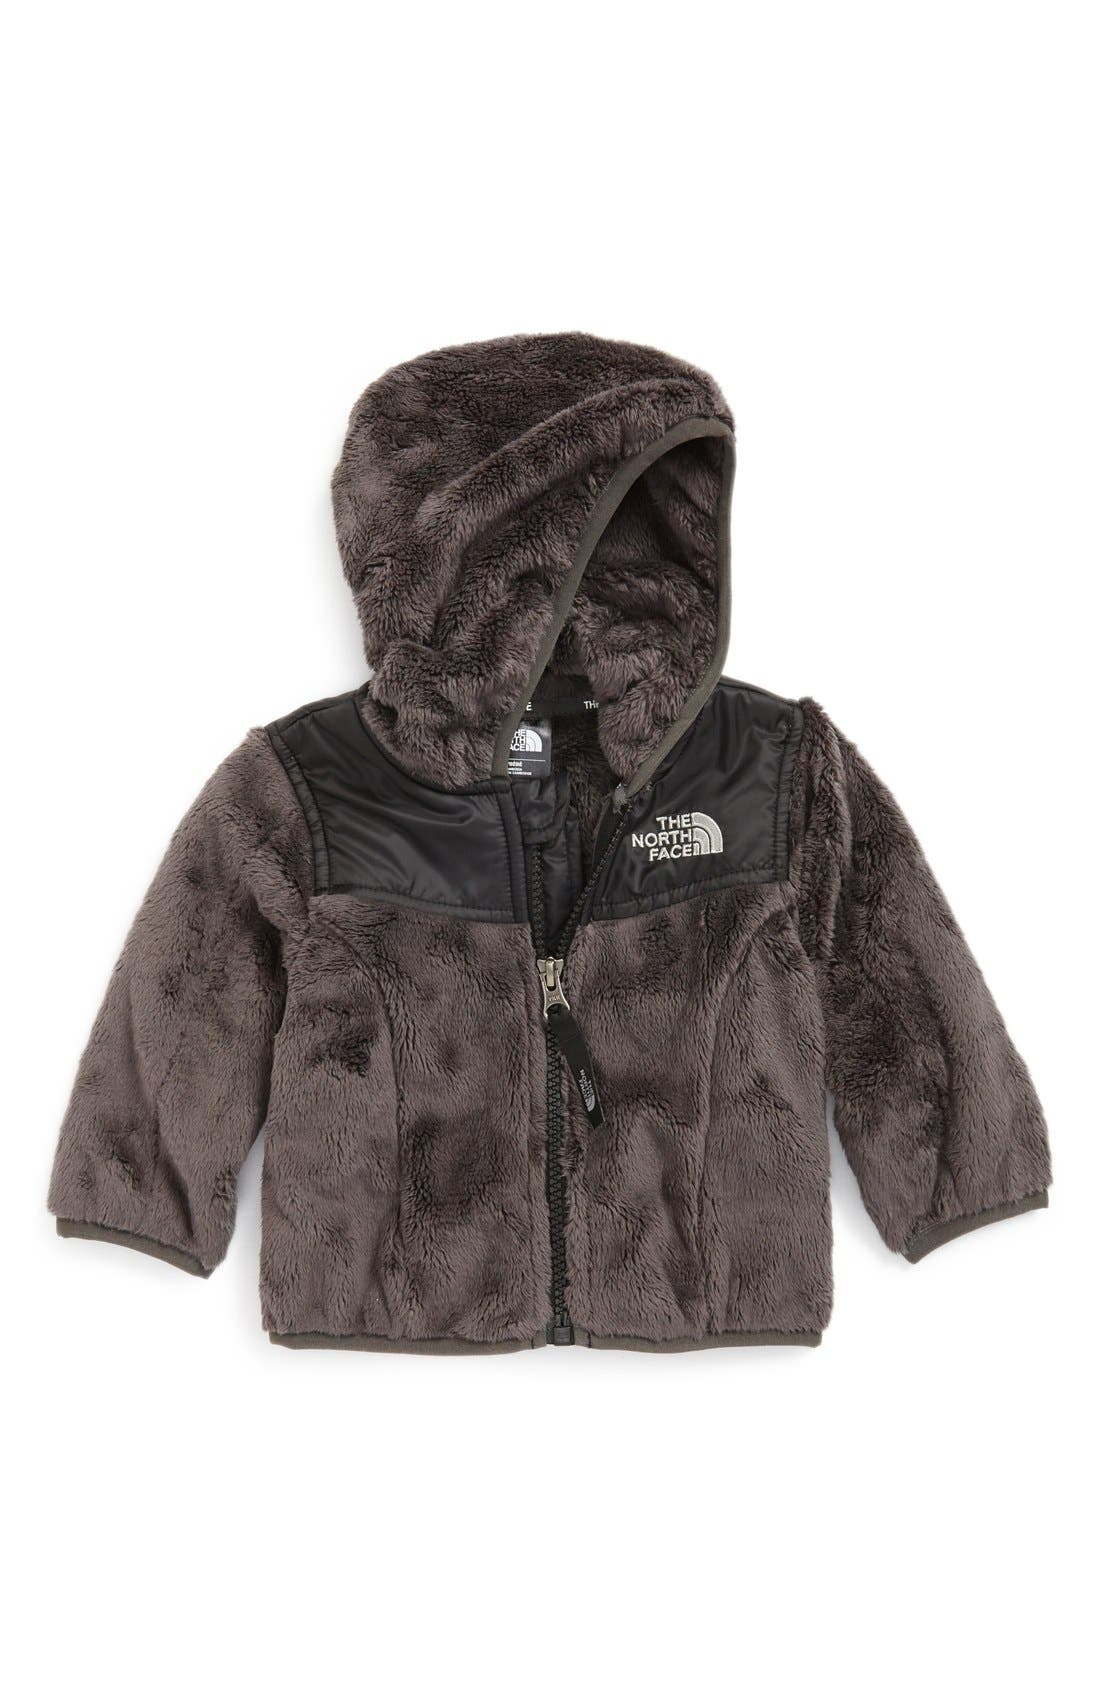 Main Image - The North Face 'Oso' Fleece Hoodie (Baby)